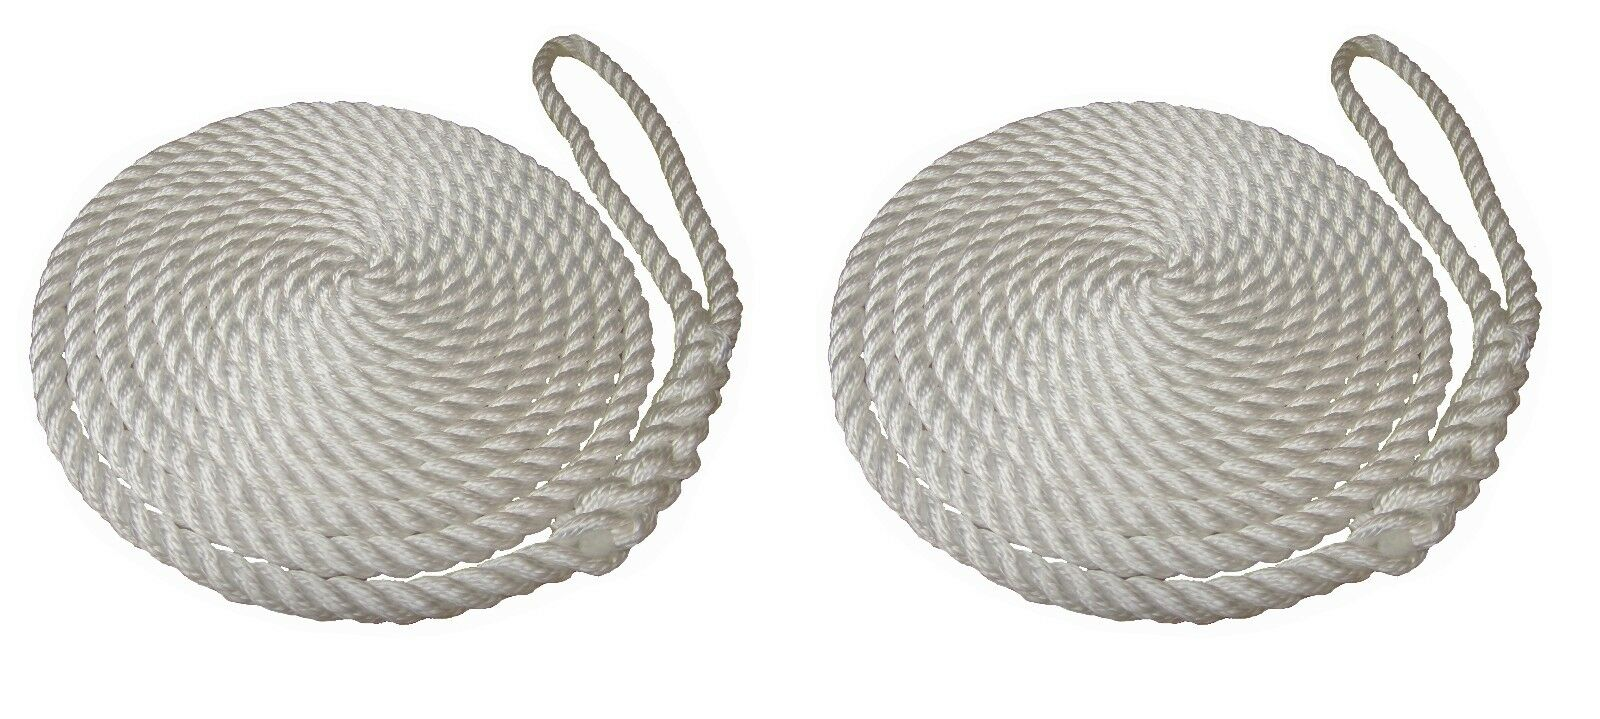 White Mooring Ropes, Softline, Warps, Boat Lines, Yachts, Canal, Boats,12mm-16mm